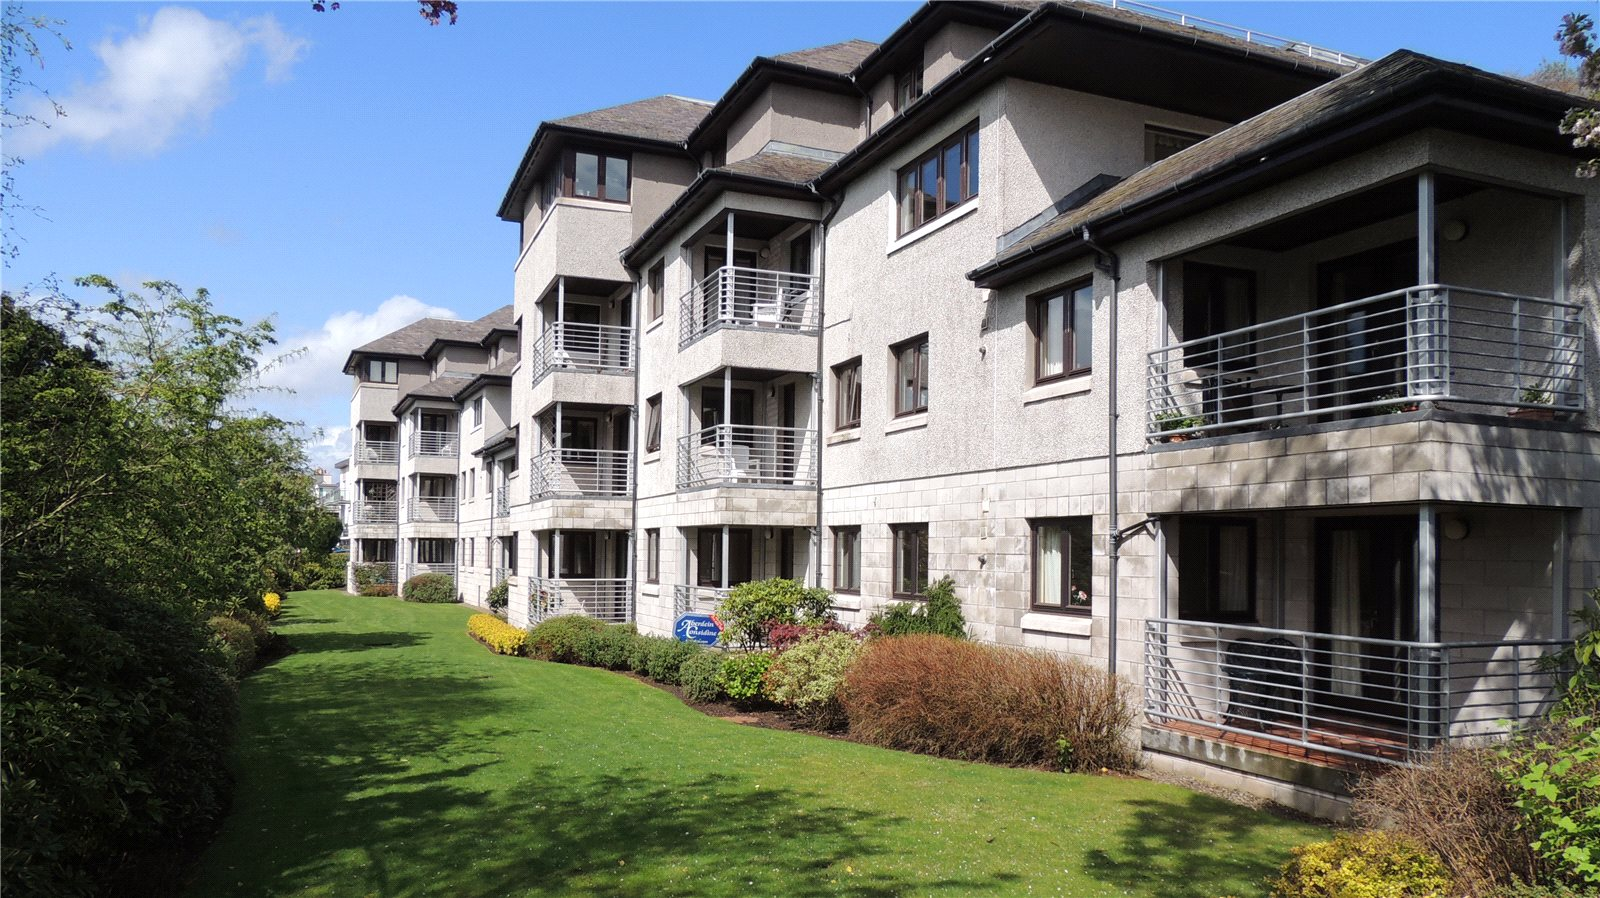 2 Riverview Park, Dundee Road, Perth - £152,500